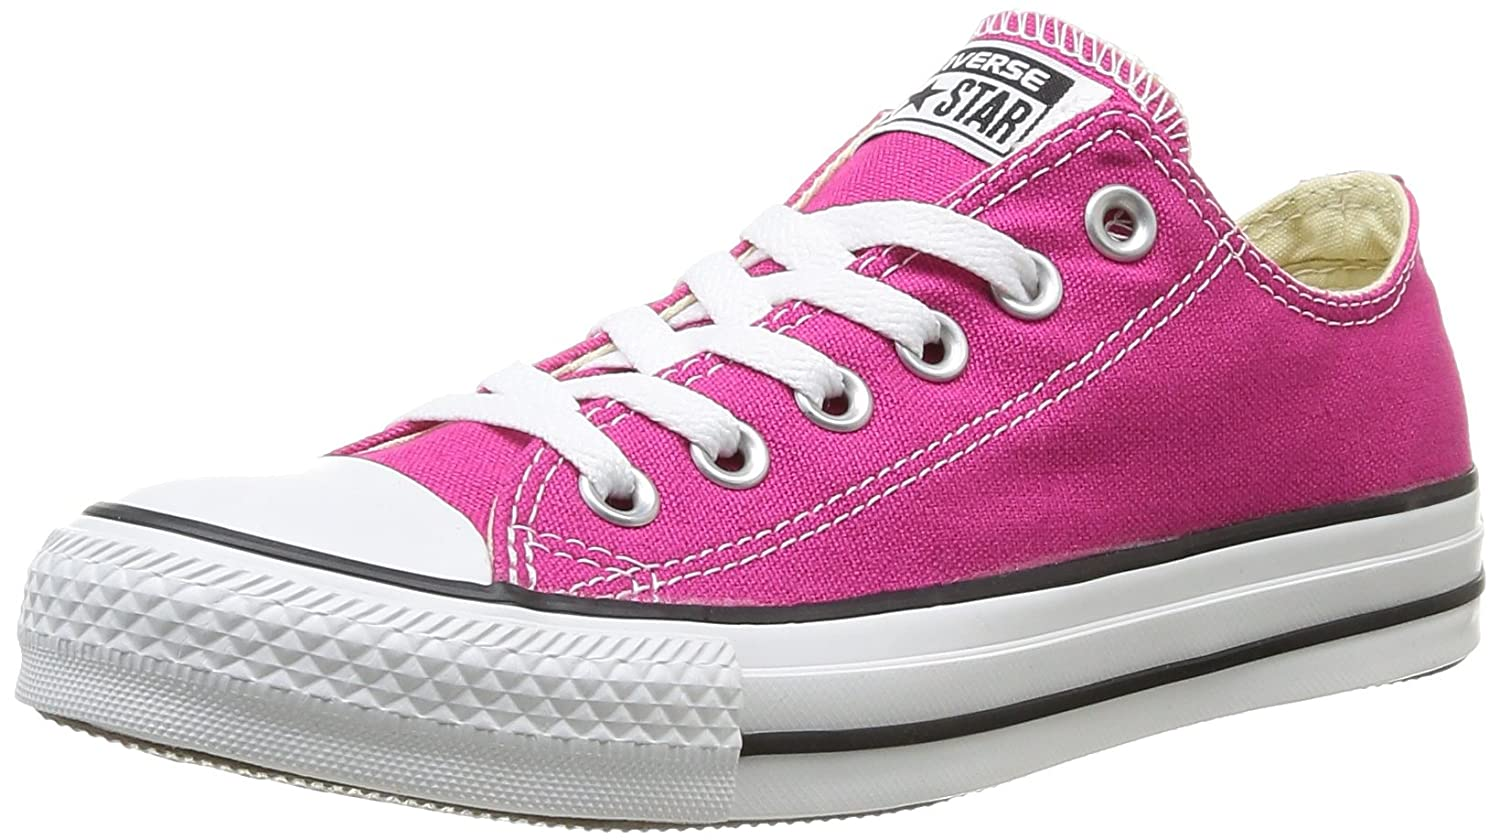 Converse Chuck Taylor Chuck All Taylor Star Core, Baskets B06XJ3YMC8 Mixte Adulte Rose 572cdef - conorscully.space